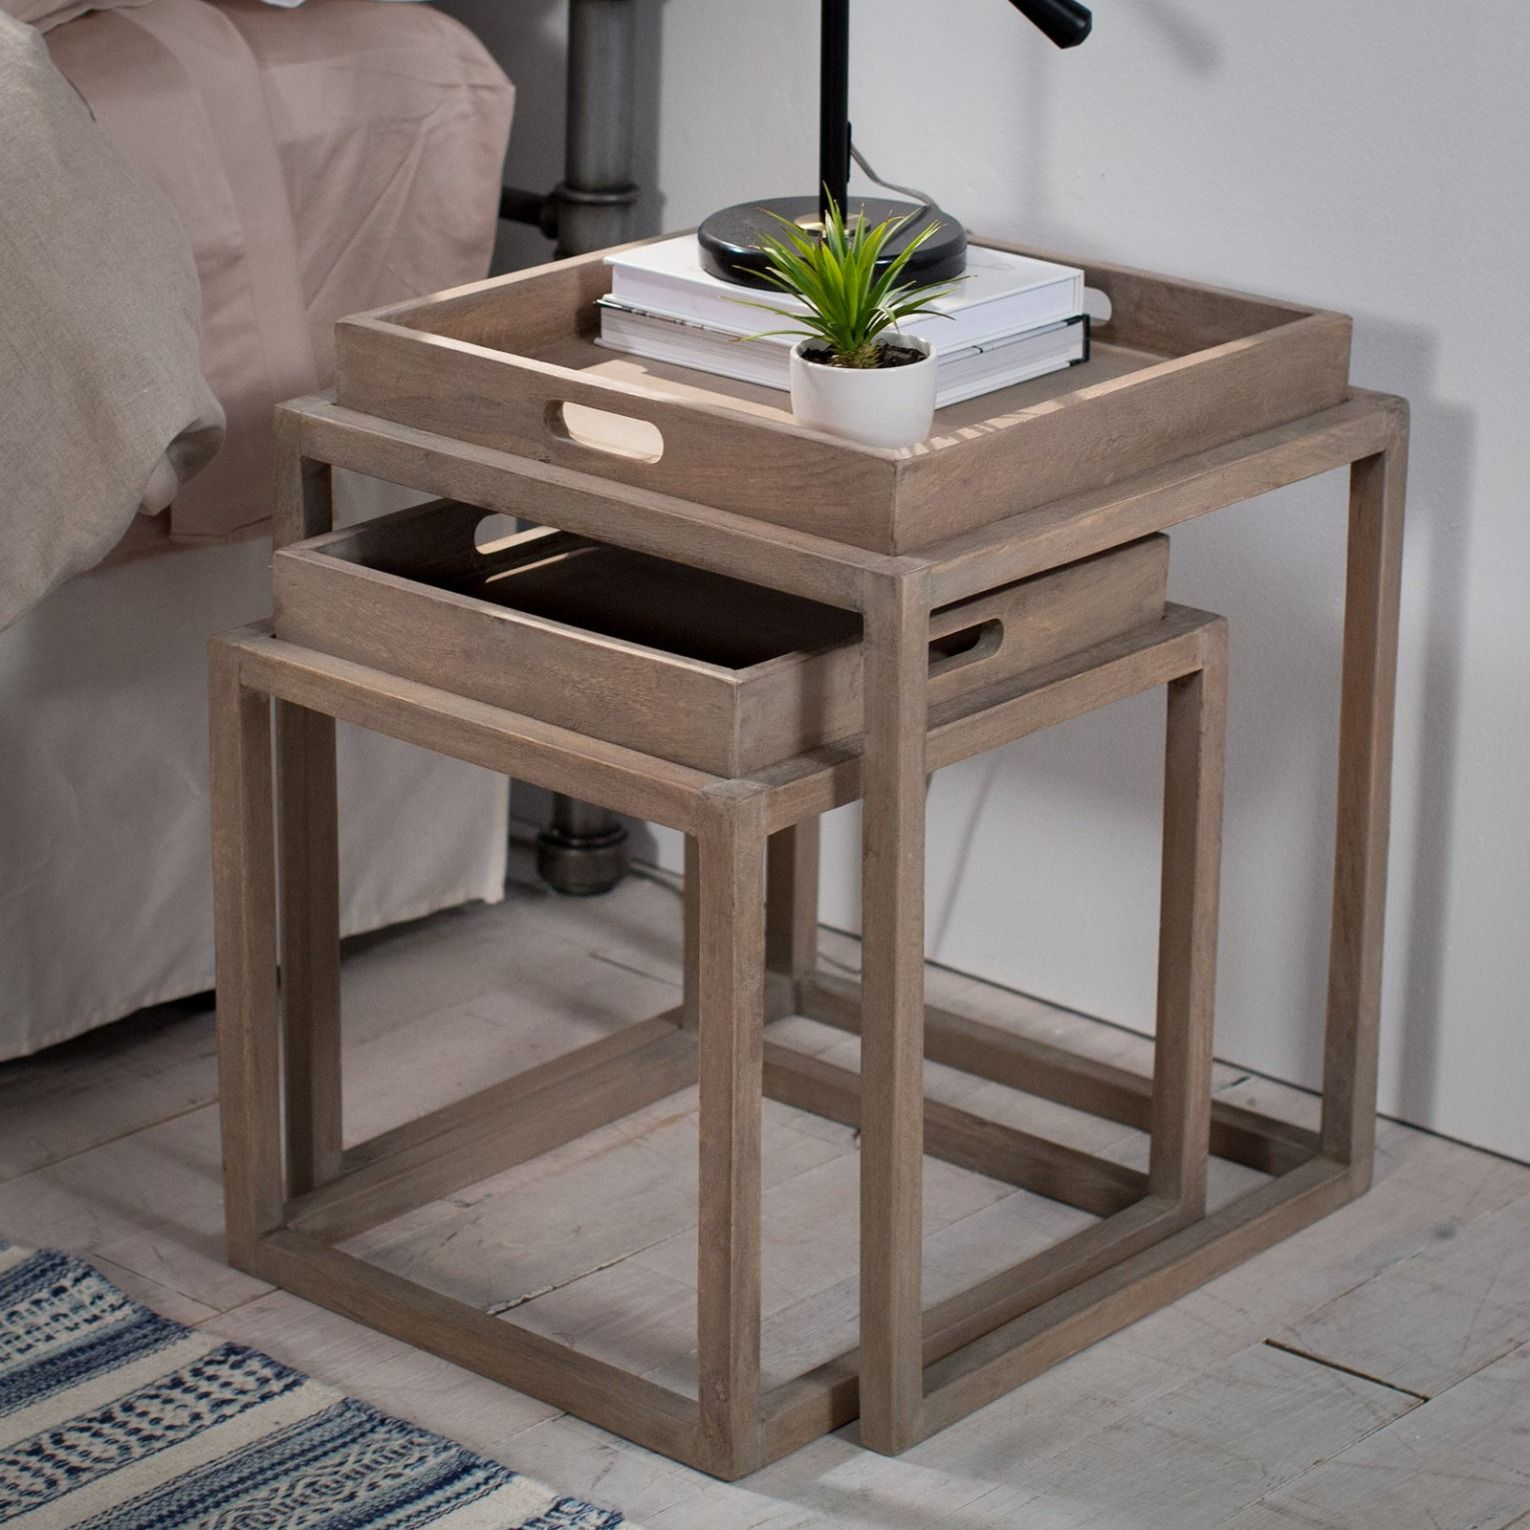 Add style and functionality to any living space with these